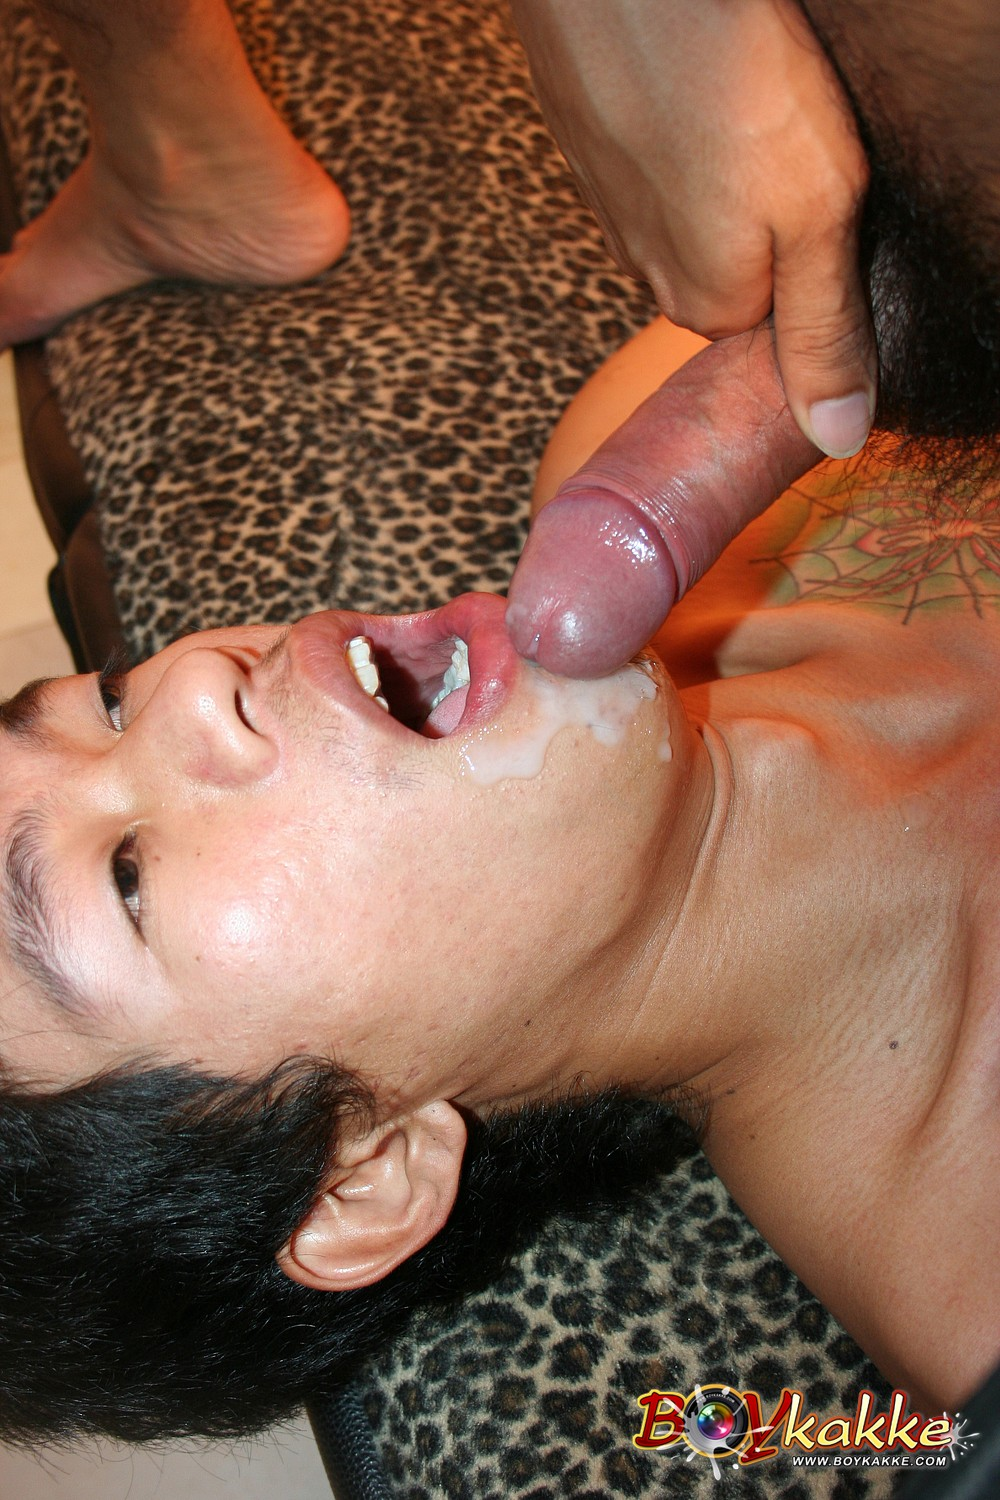 Boykakke Big Cum Neck Fongenee Nut Lakdee17 Amateur Asian Twinks Fuck and Eat Each Others Cum